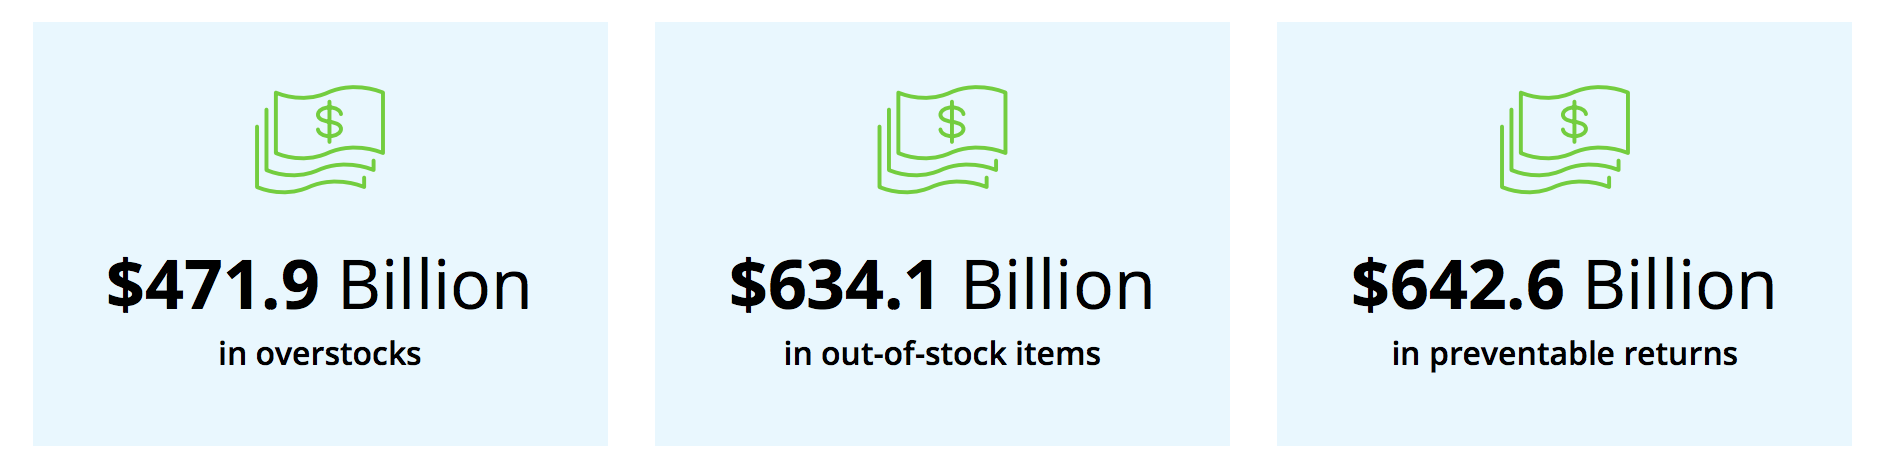 Preventable returns: $642.6 billion each year Out-of-stocks: $634.1 billion each year Overstocks: $471.9 billion each year